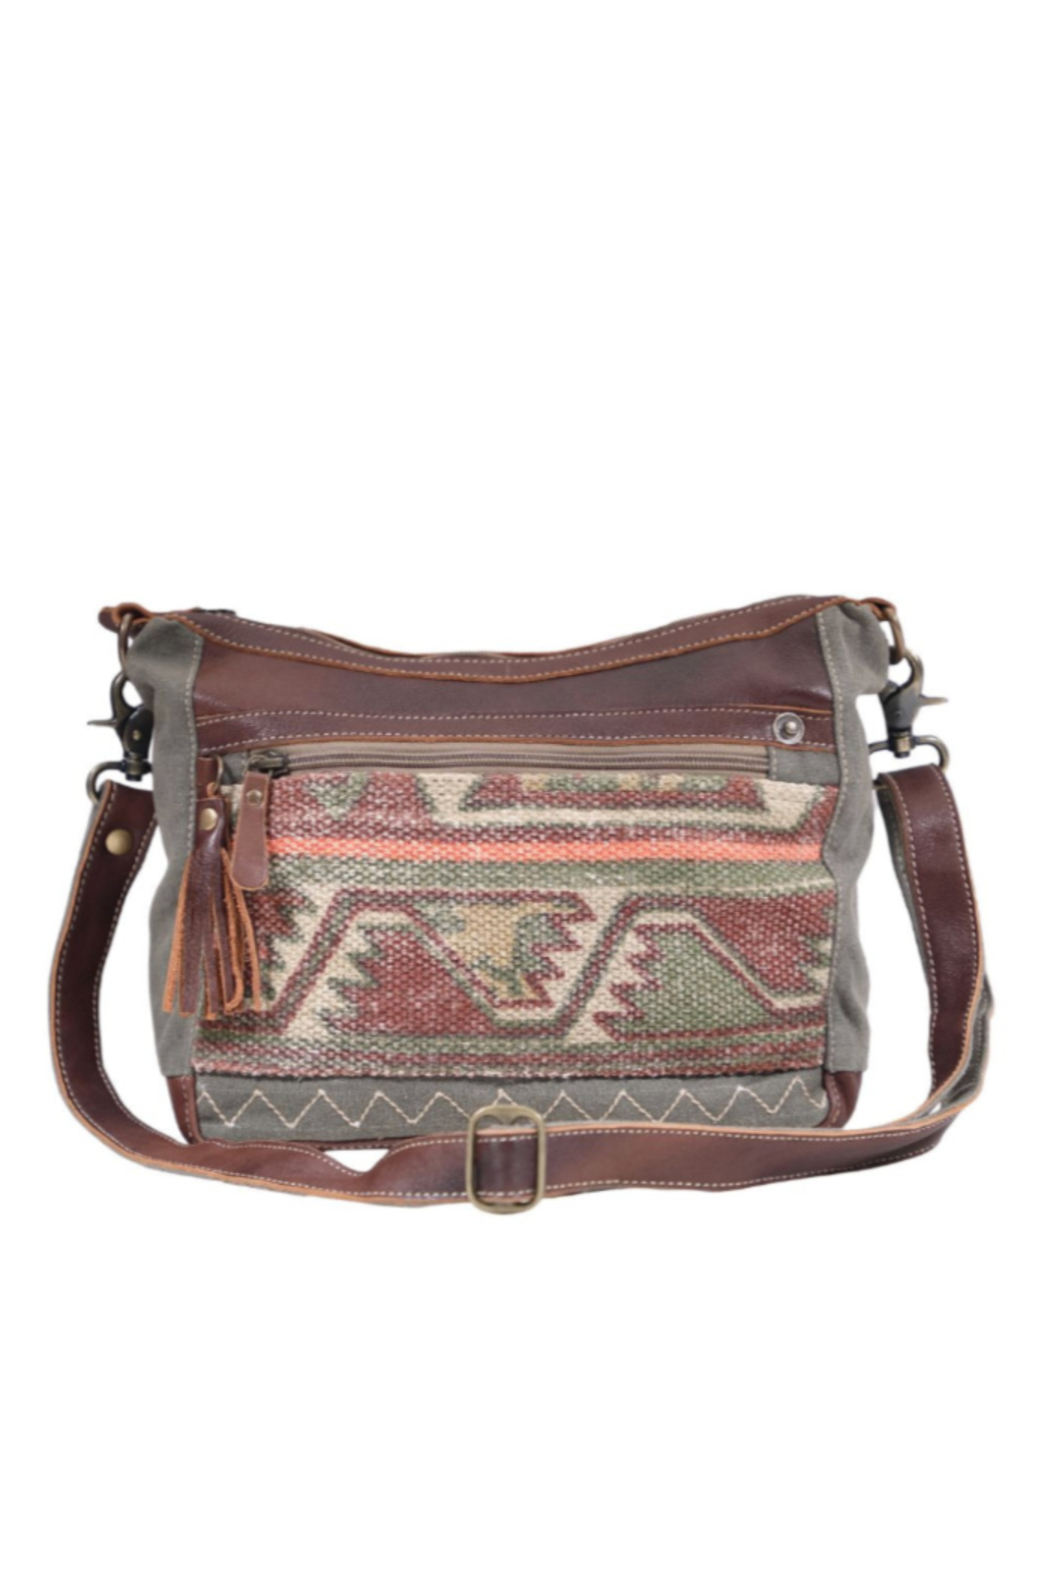 Myra Bags Aztec Shoulder Bag From Tennessee By Terri Leigh S Shoptiques Welcome to myra bags, we wish you many years of success retailing with our exceptional myra bags. shoptiques